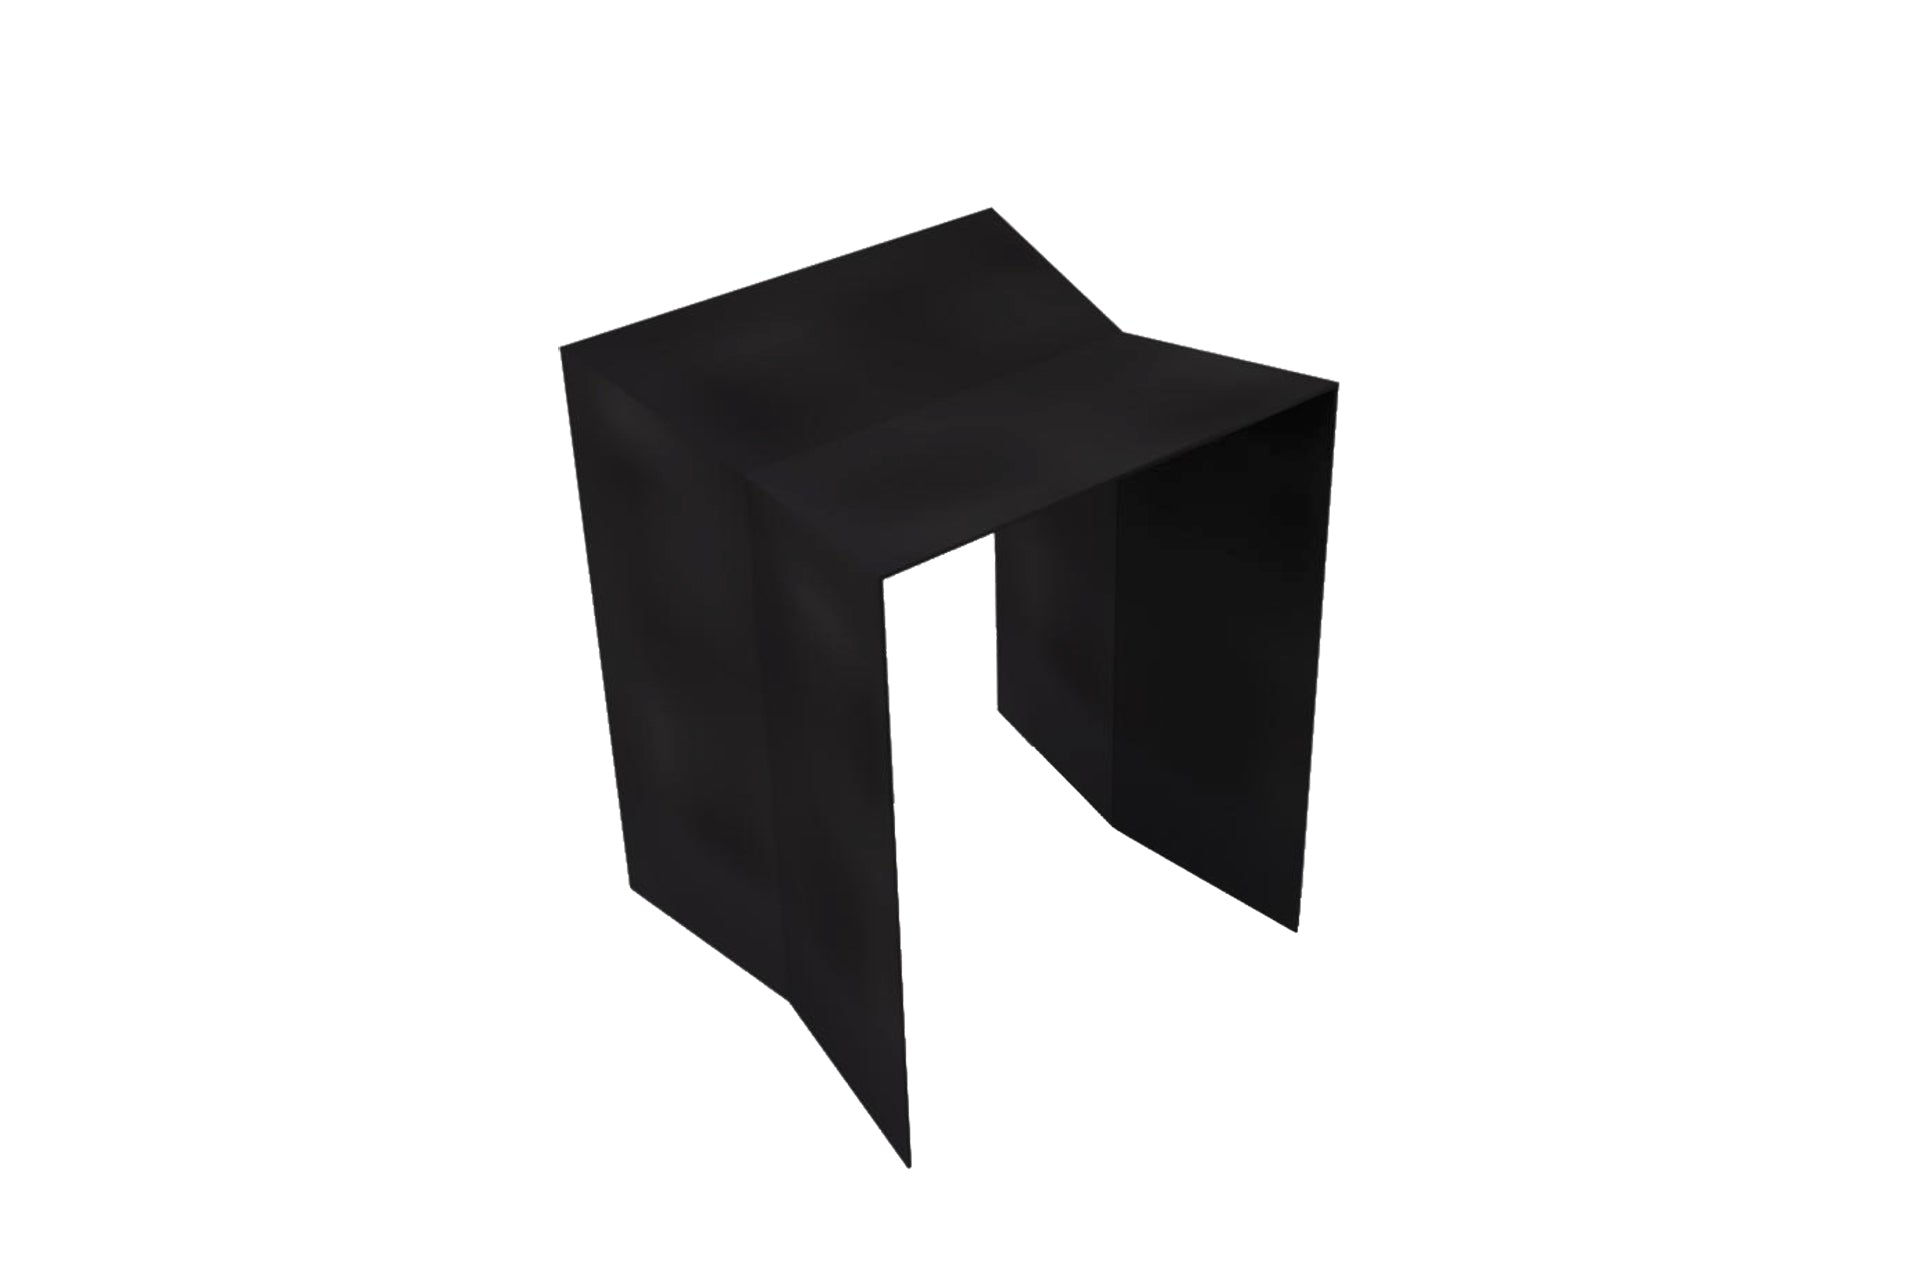 Tabouret acier noir Bulm by Slawinski-PARIDEO design durable